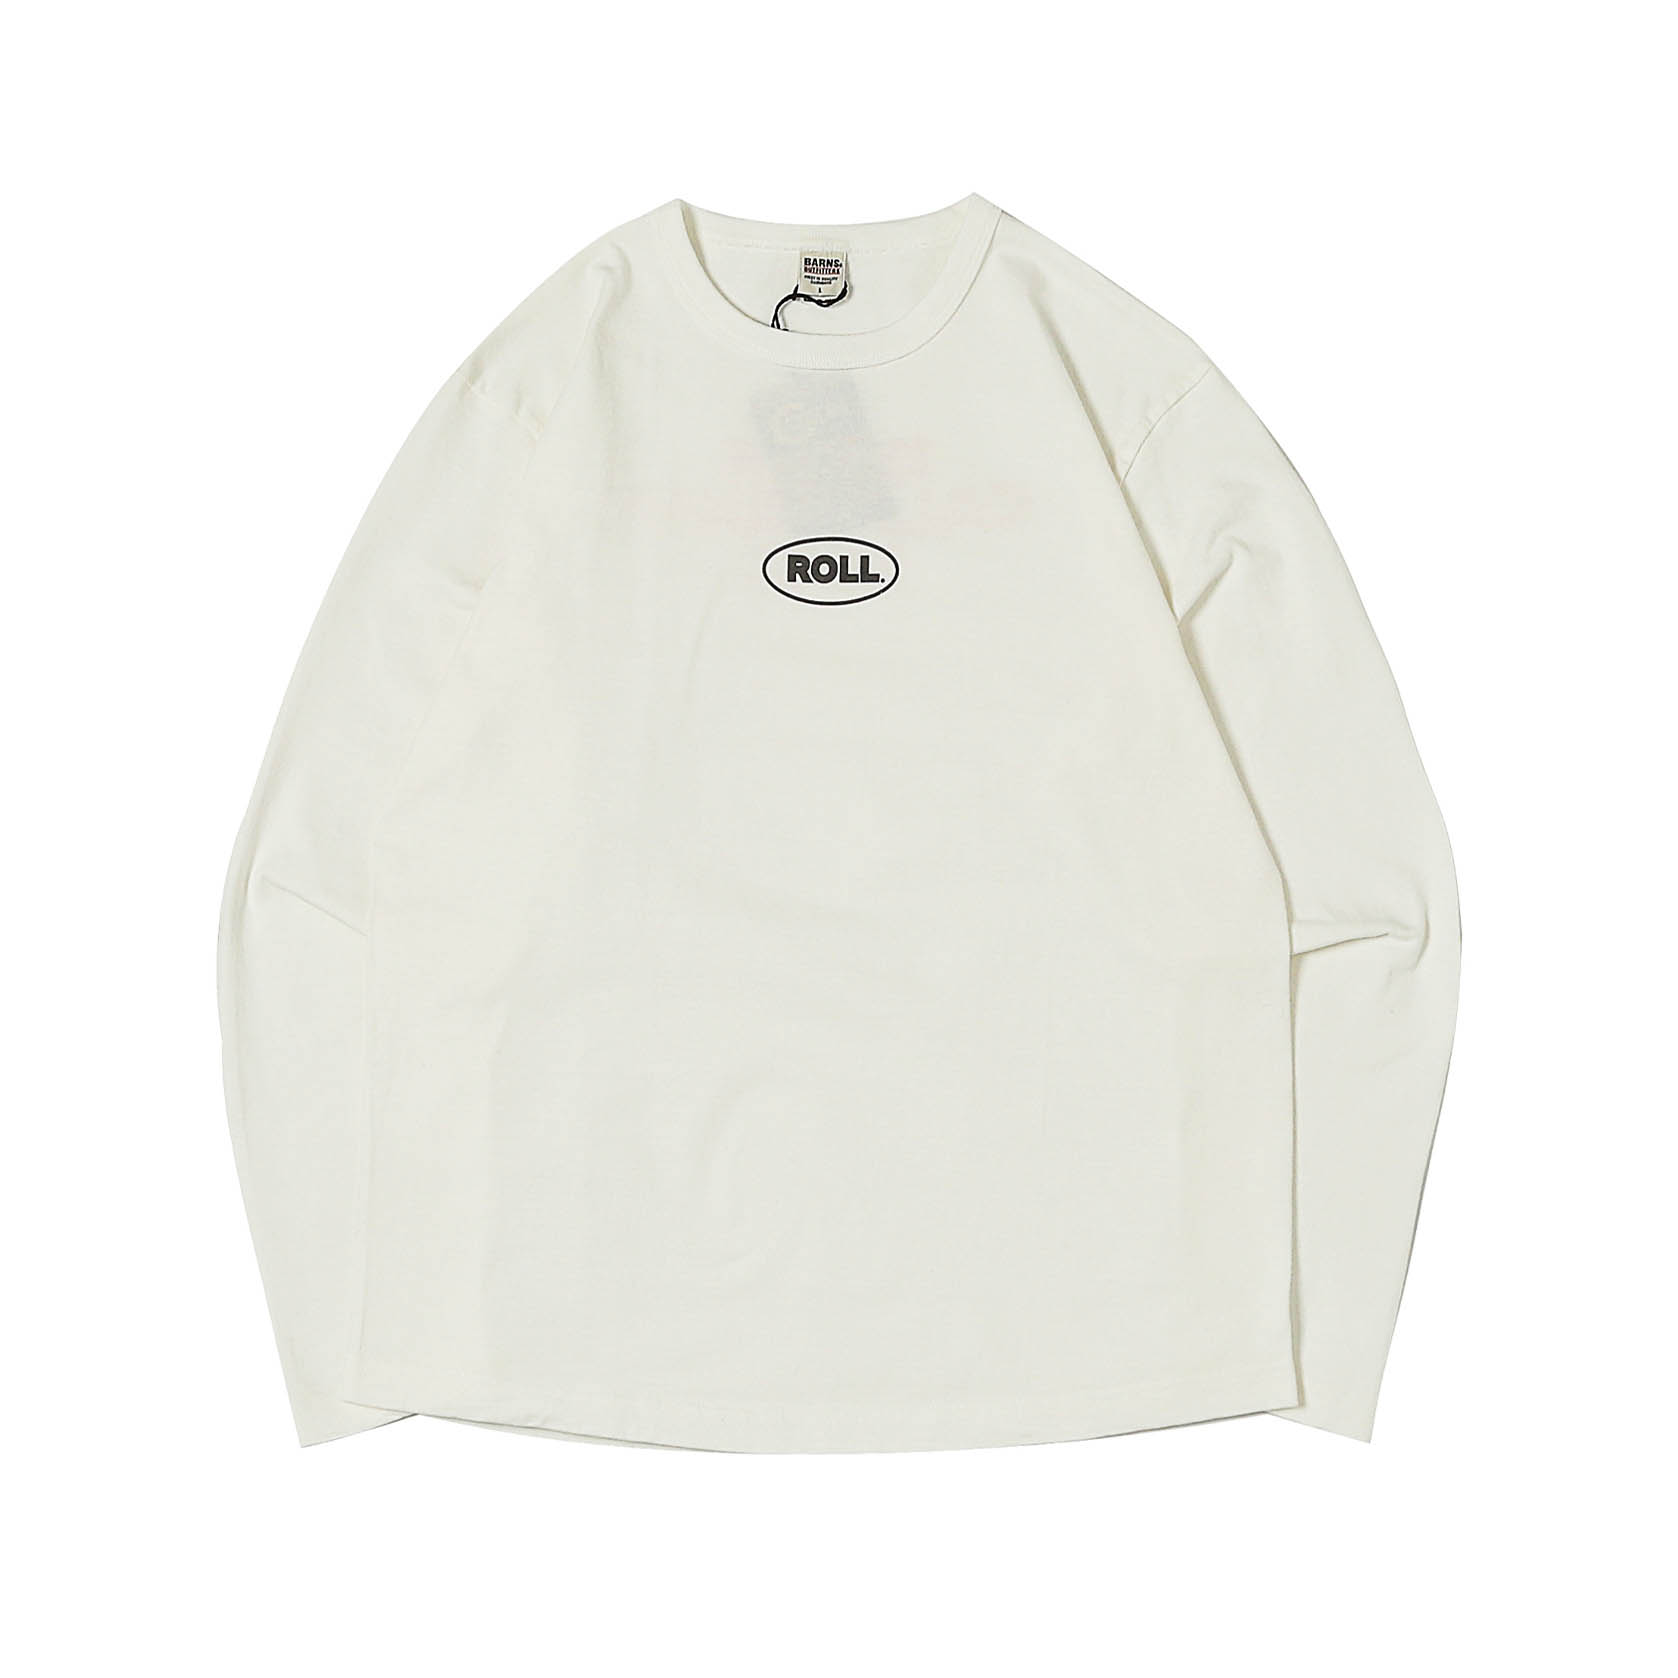 L/S PRINTED TEE - MINI ROLL WHITE